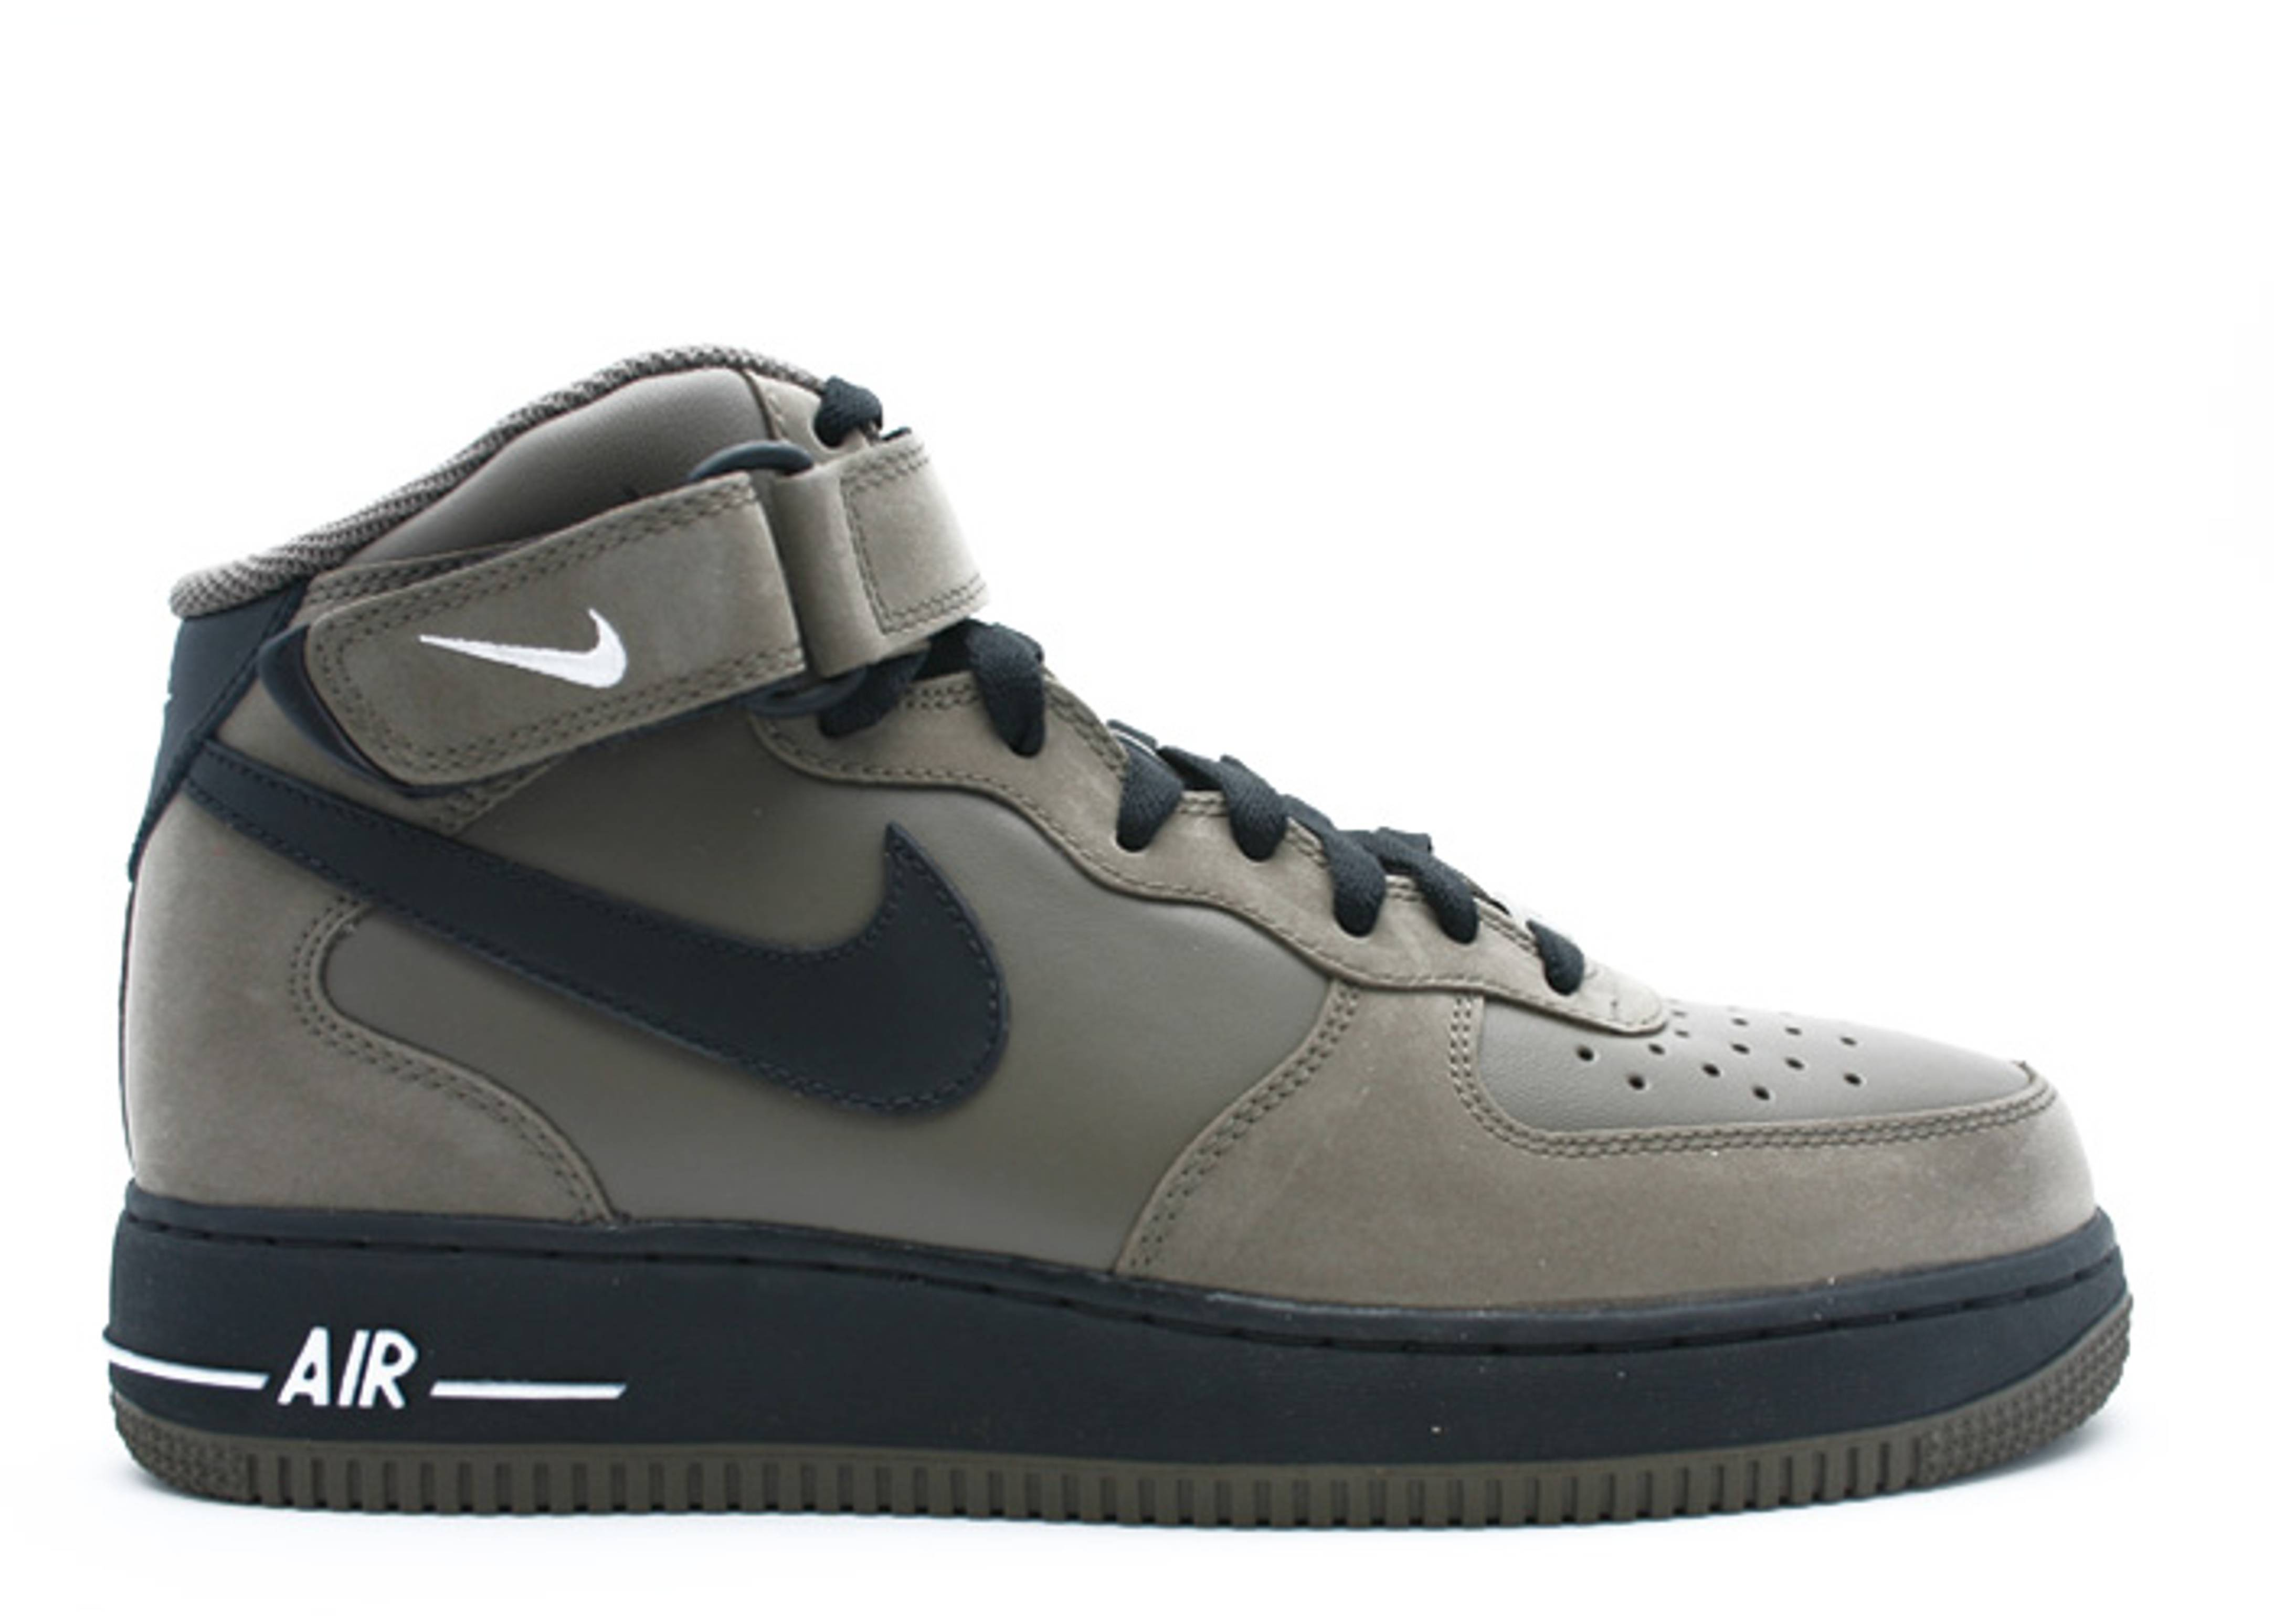 air force 1 mid 07 nike 315123 211 olive khaki black. Black Bedroom Furniture Sets. Home Design Ideas